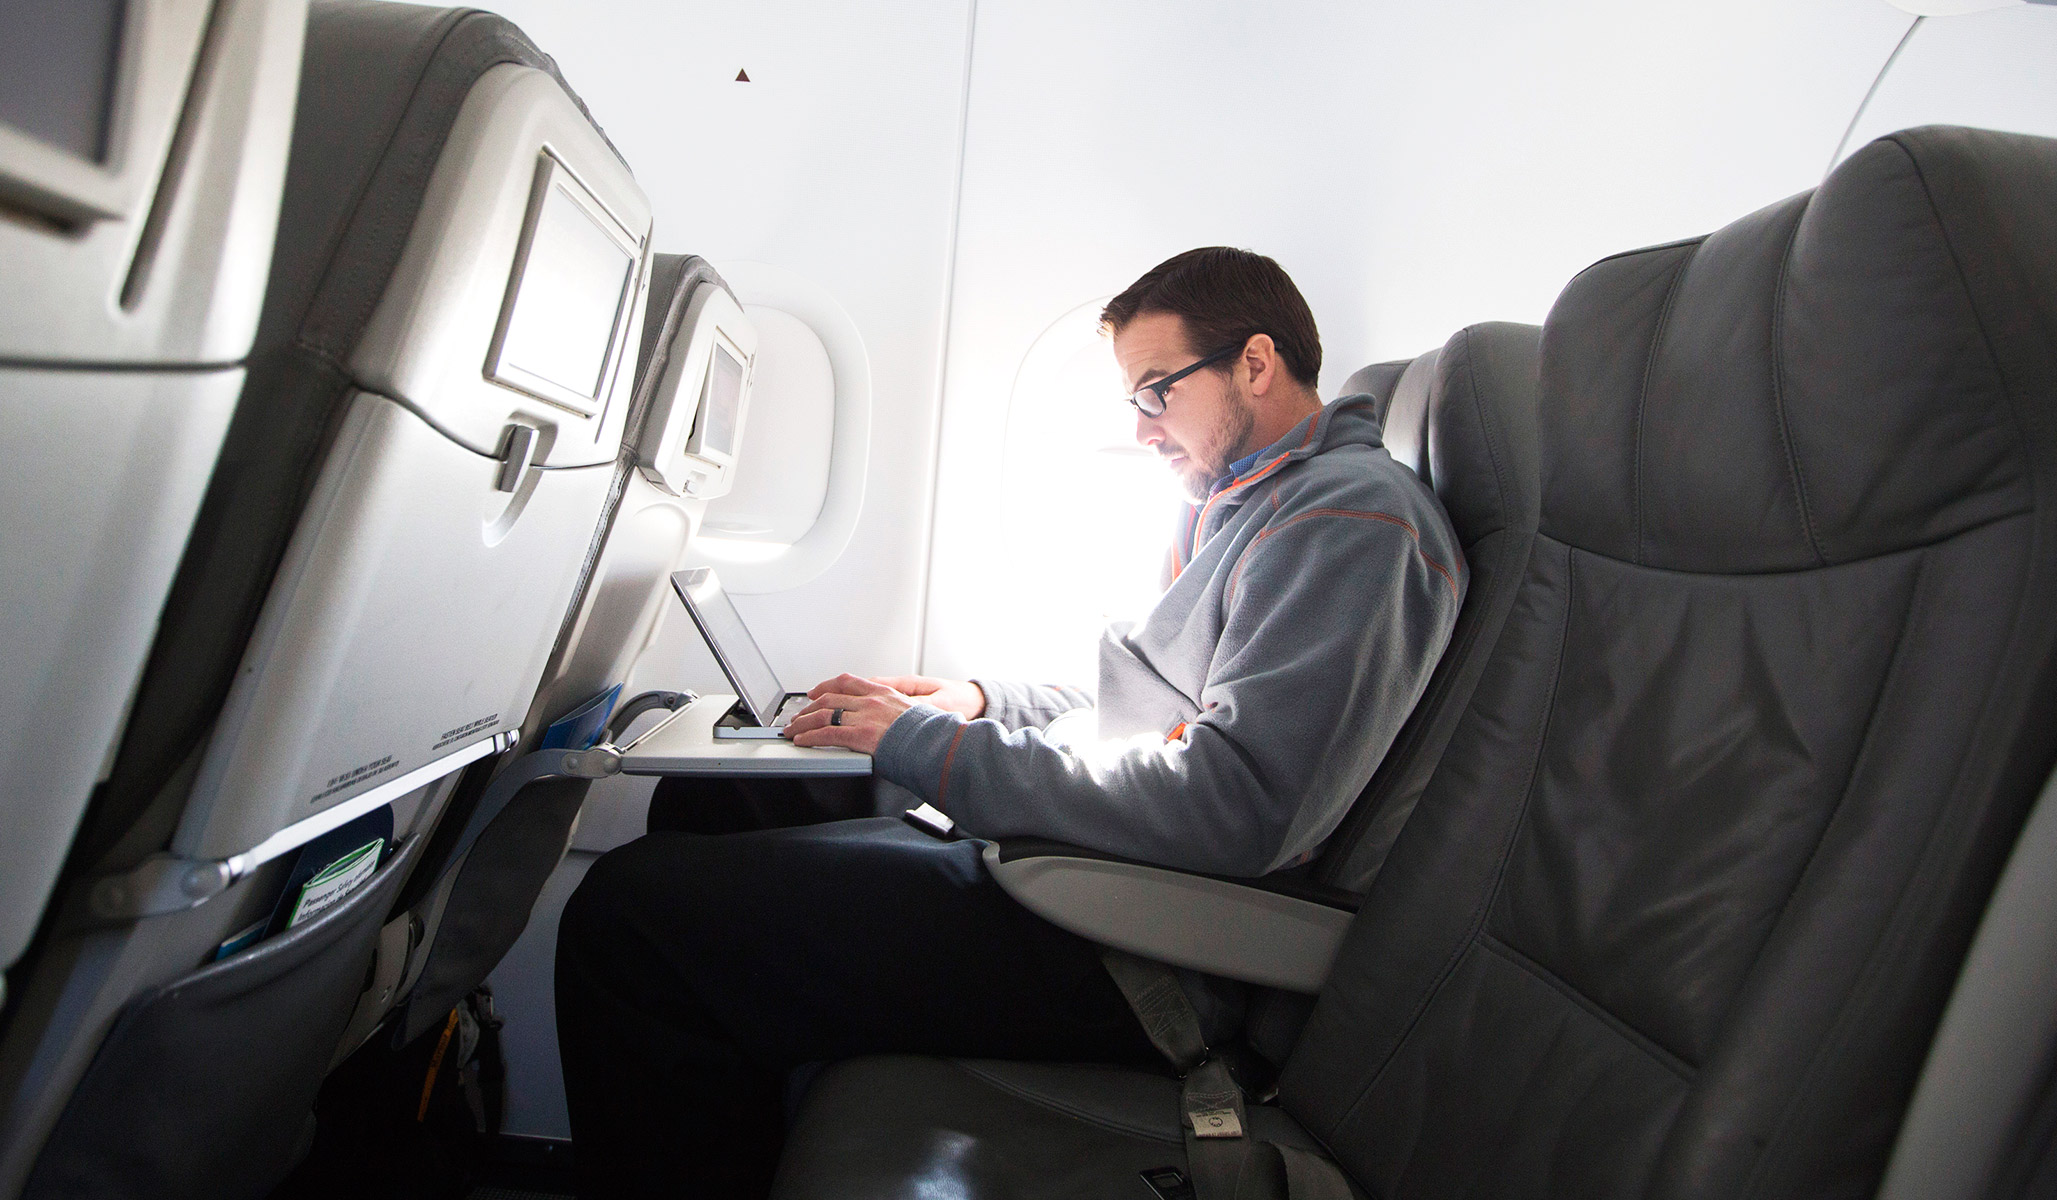 Will 'Video-Shaming' Follow Our Summer of 'Flight-Shaming'?   National Review